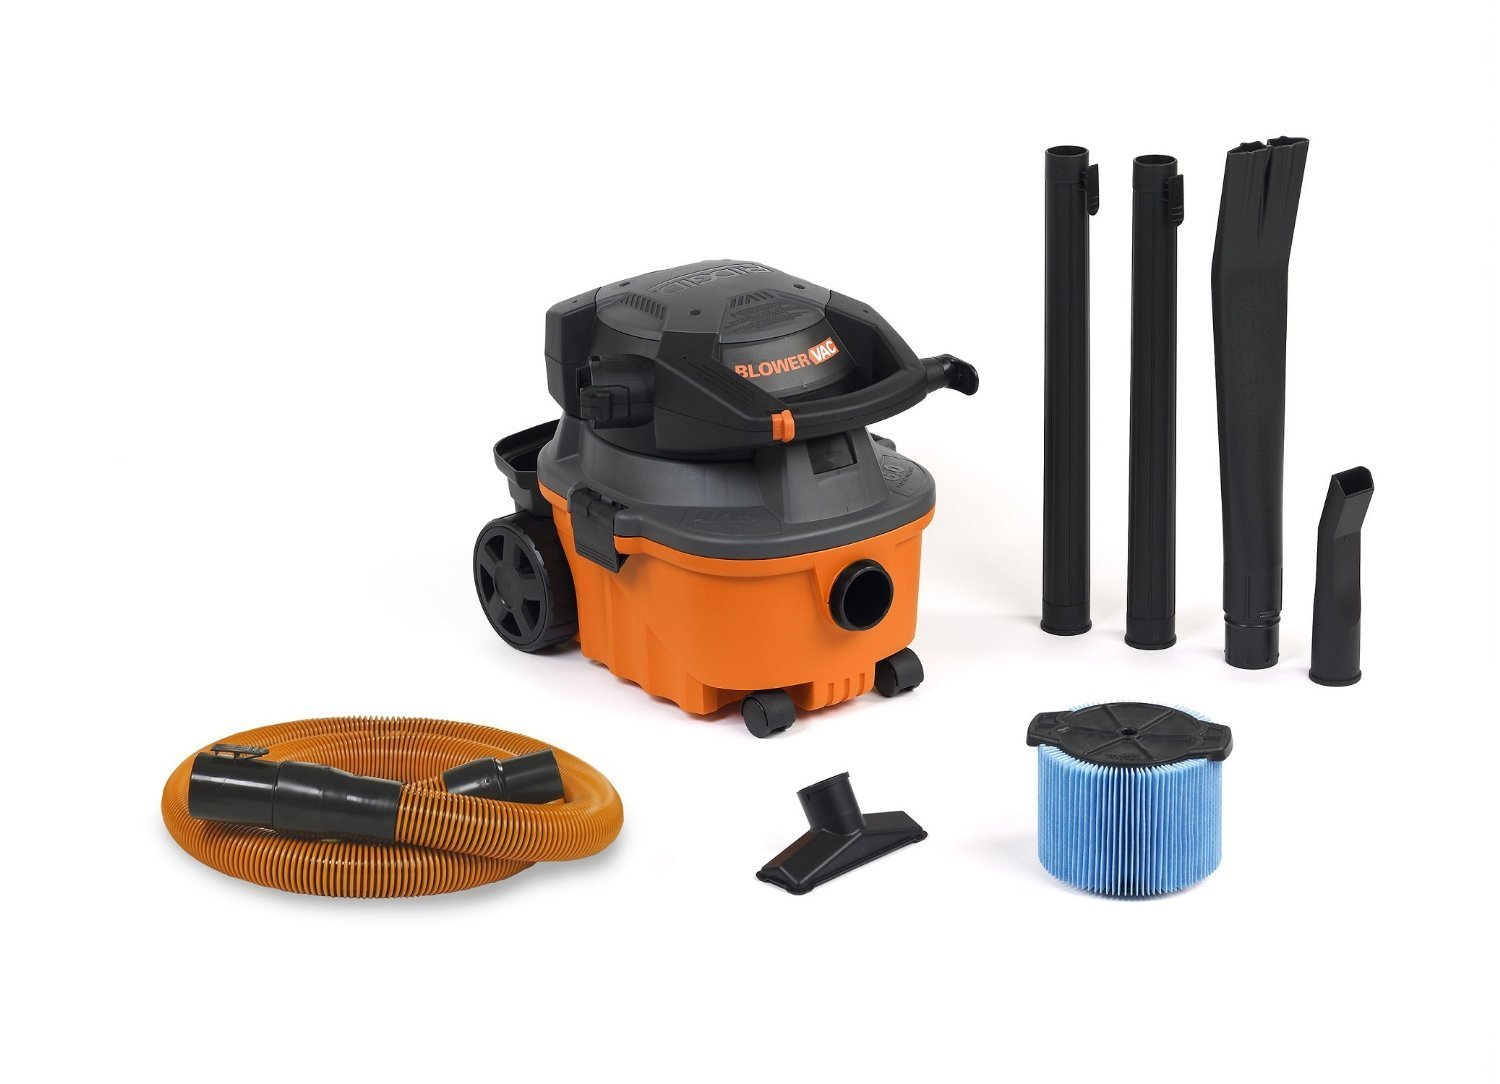 RIDGID VAC4010 2-in-1 Compact and Portable Wet Dry Vacuum Cleaner with Detachable Blower